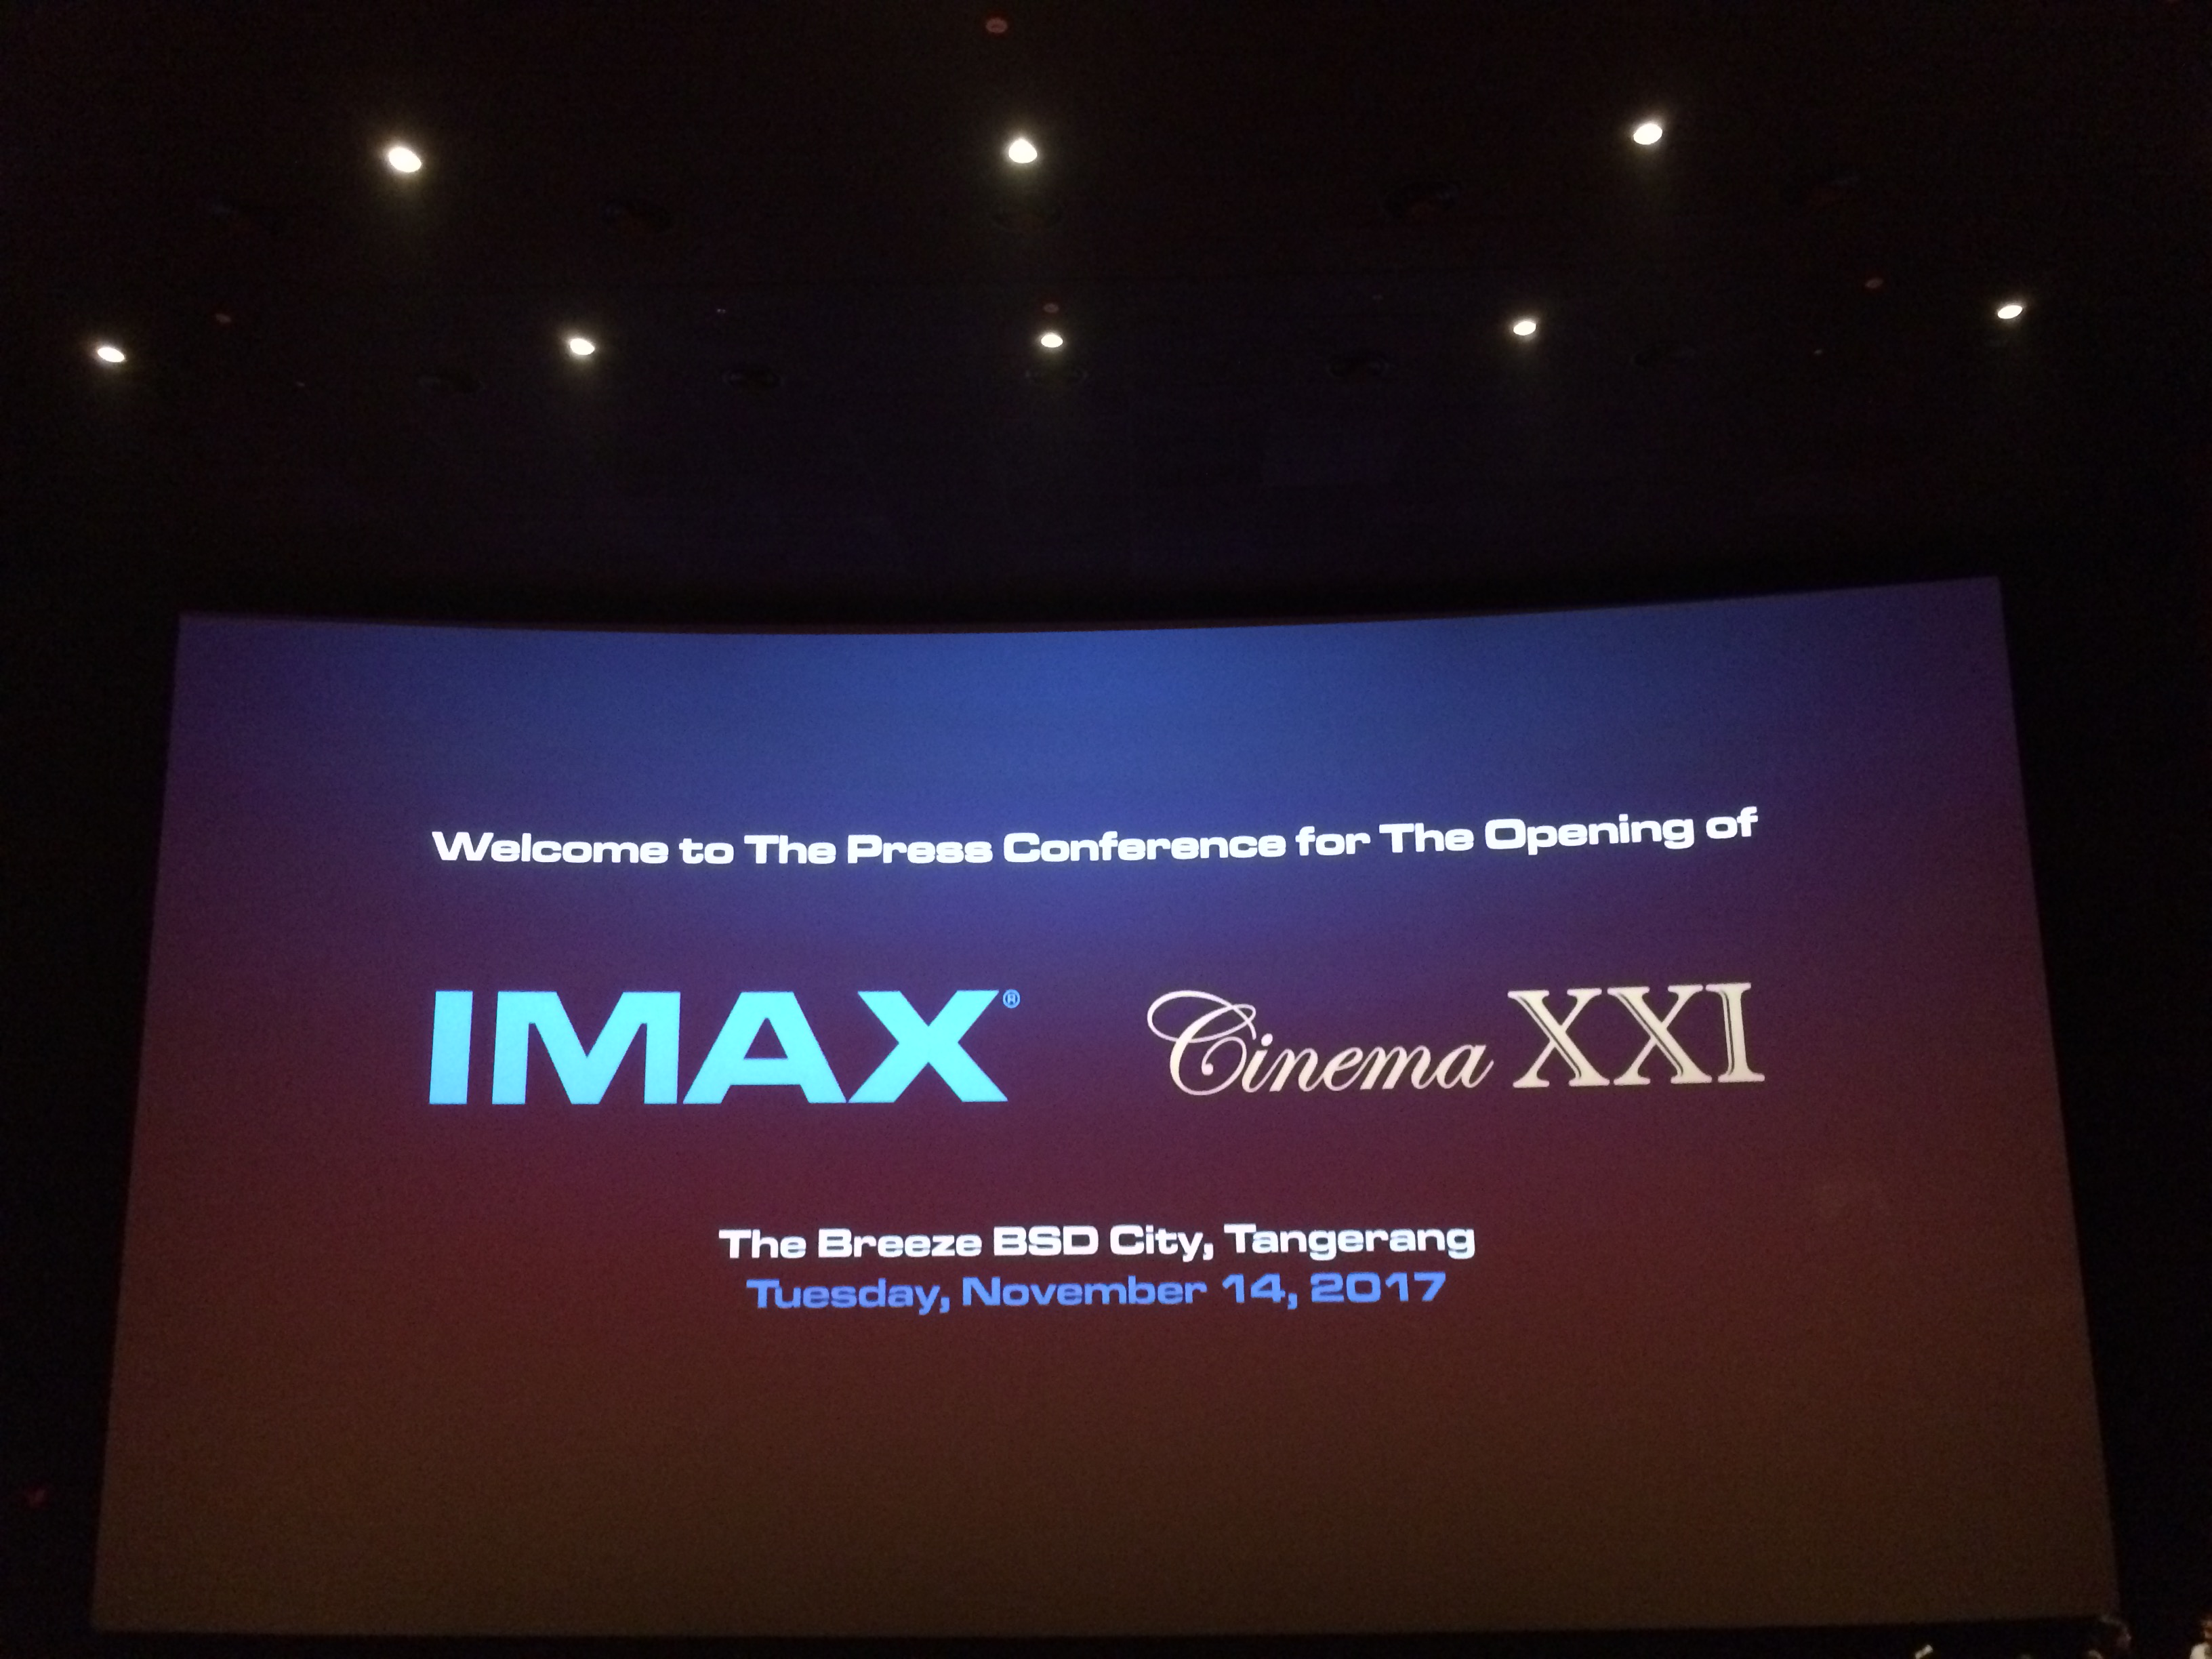 IMAX The Breeze BSD